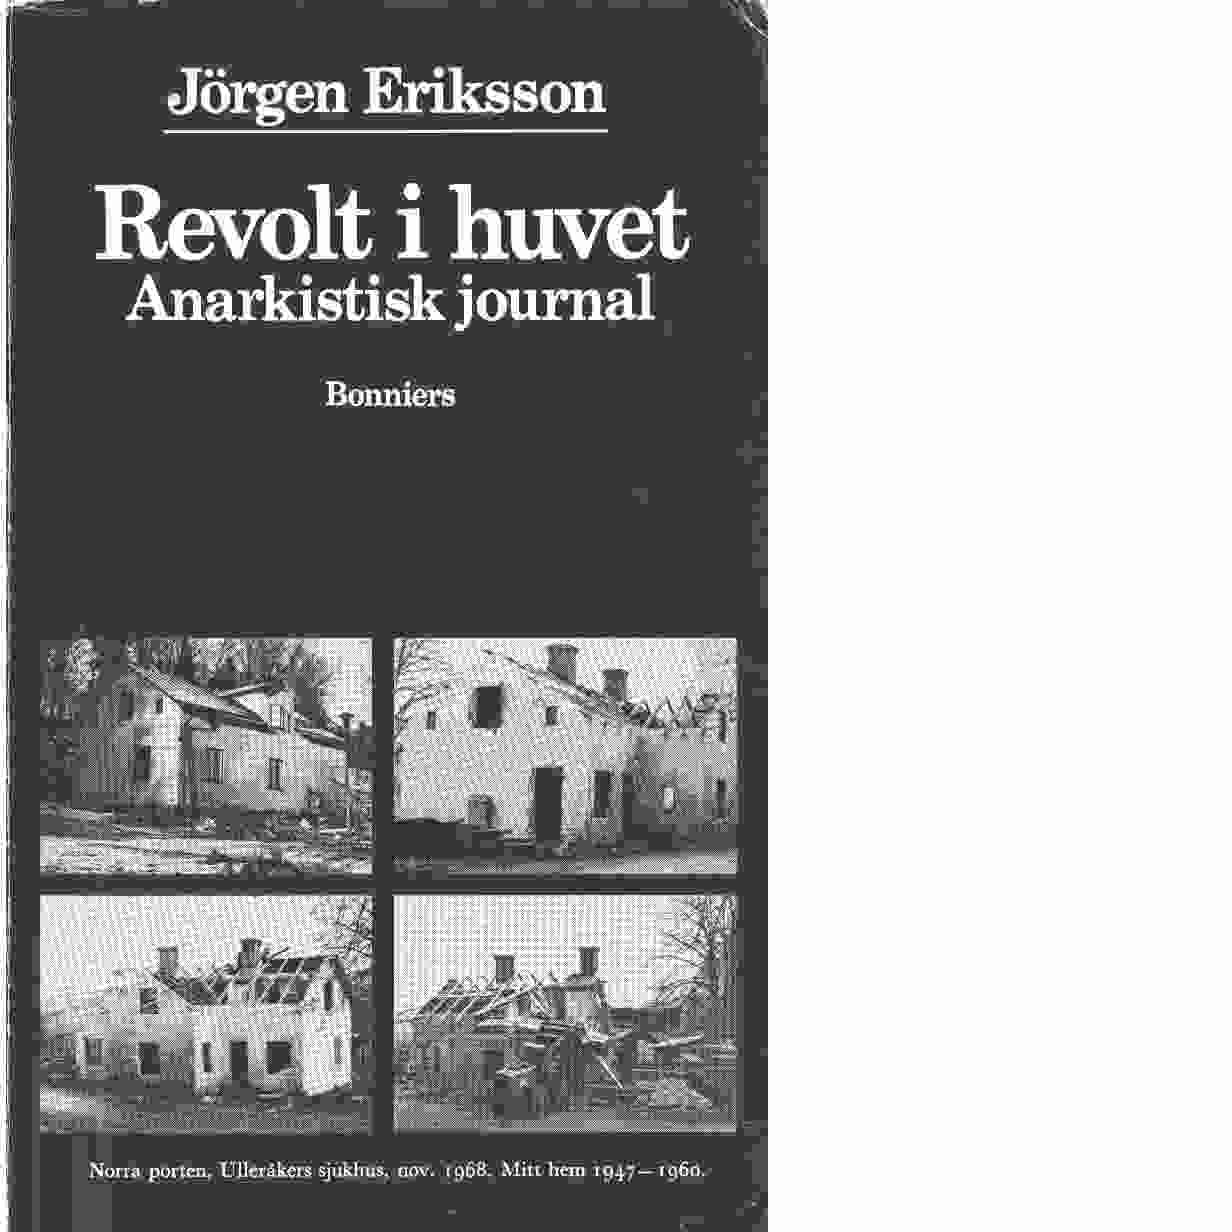 Revolt i huvet : anarkistisk journal - Eriksson, Jörgen